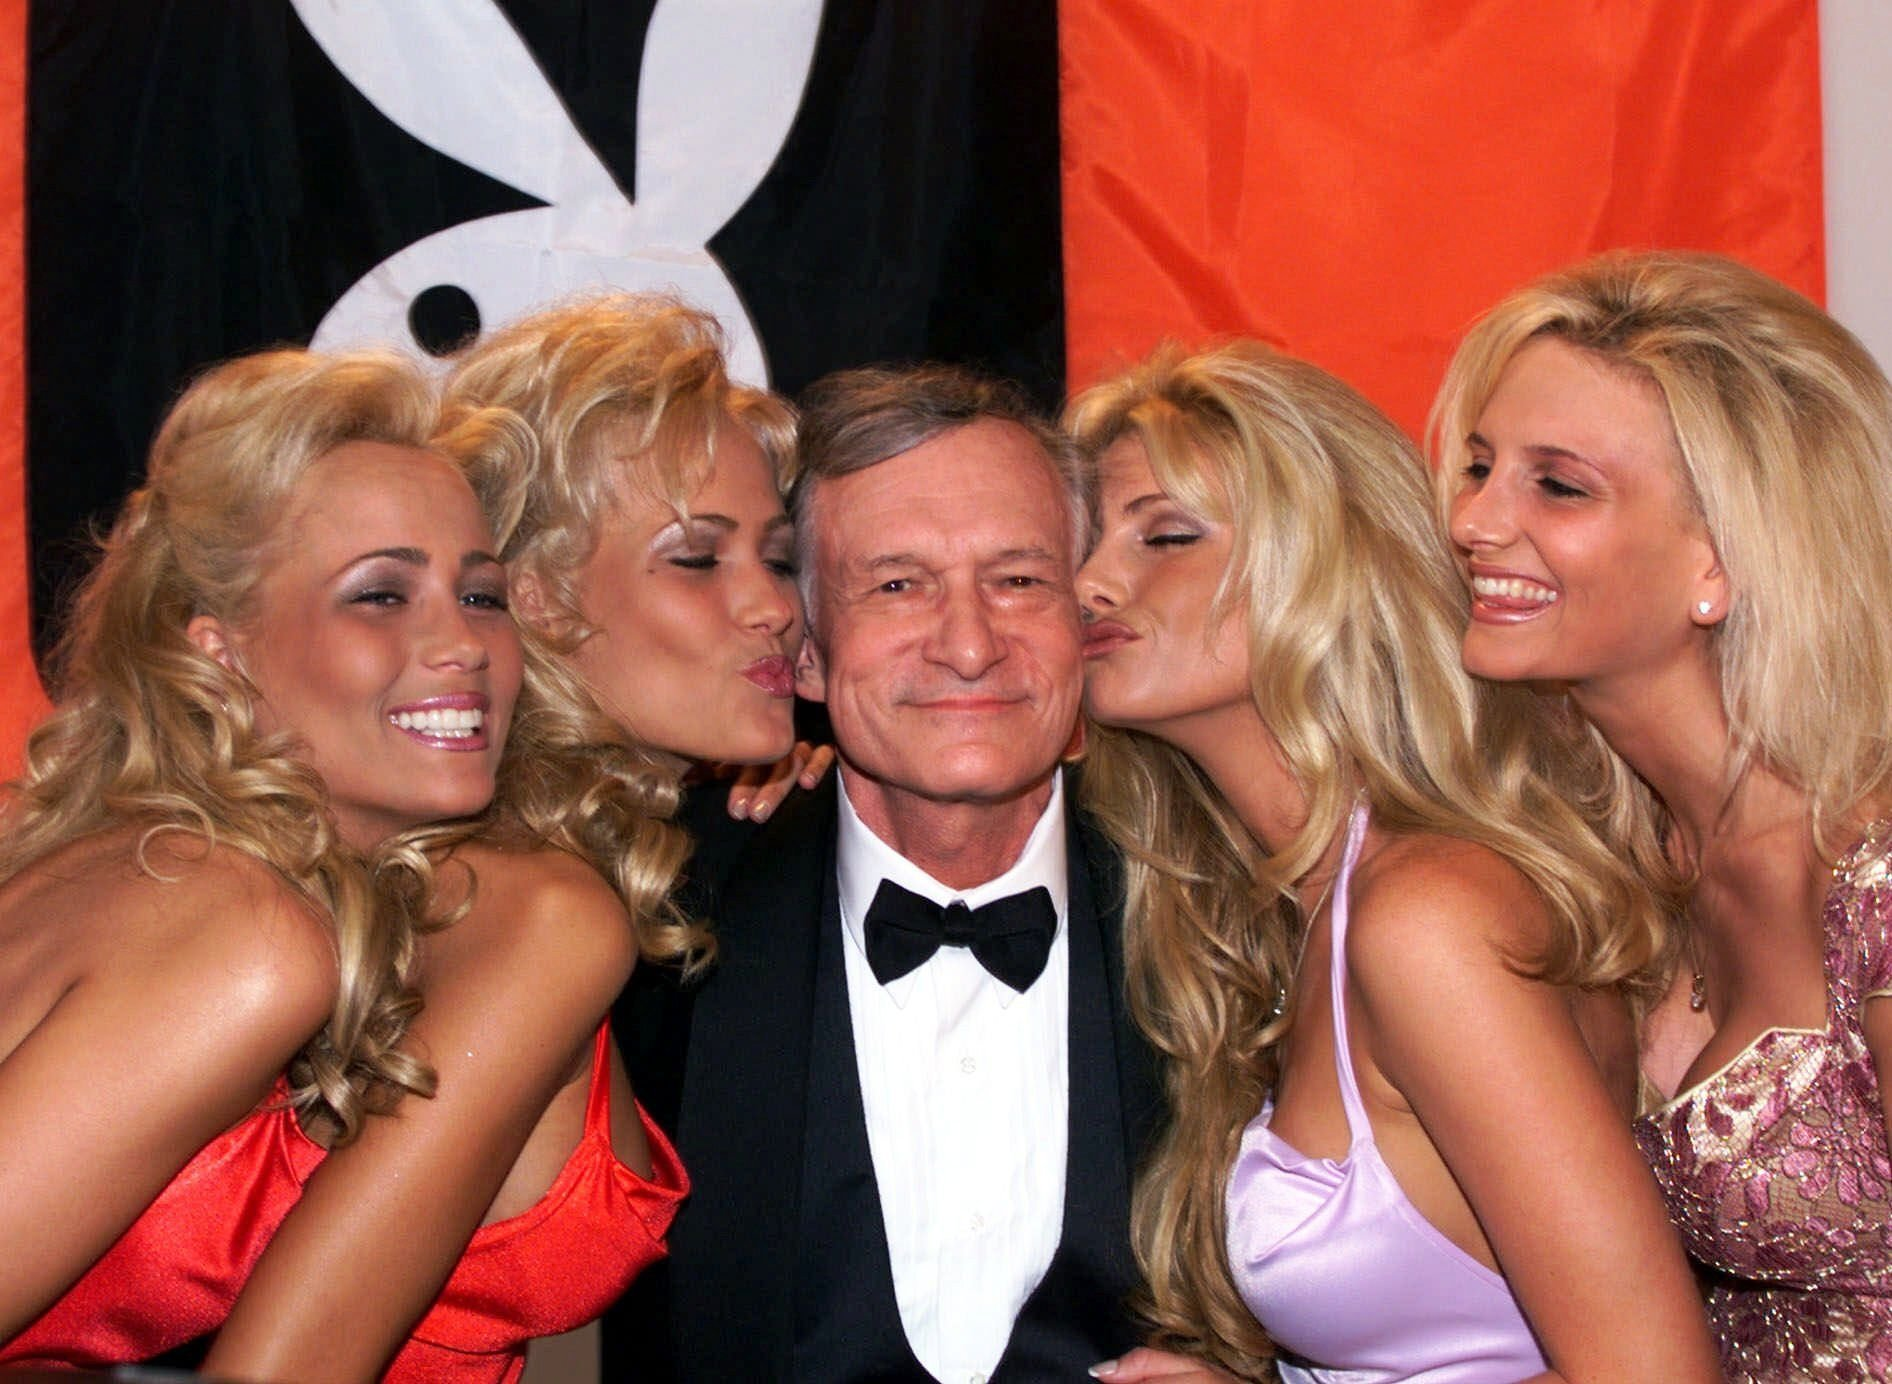 Strange Facts Hugh Hefner Wouldn't Want Us To Know